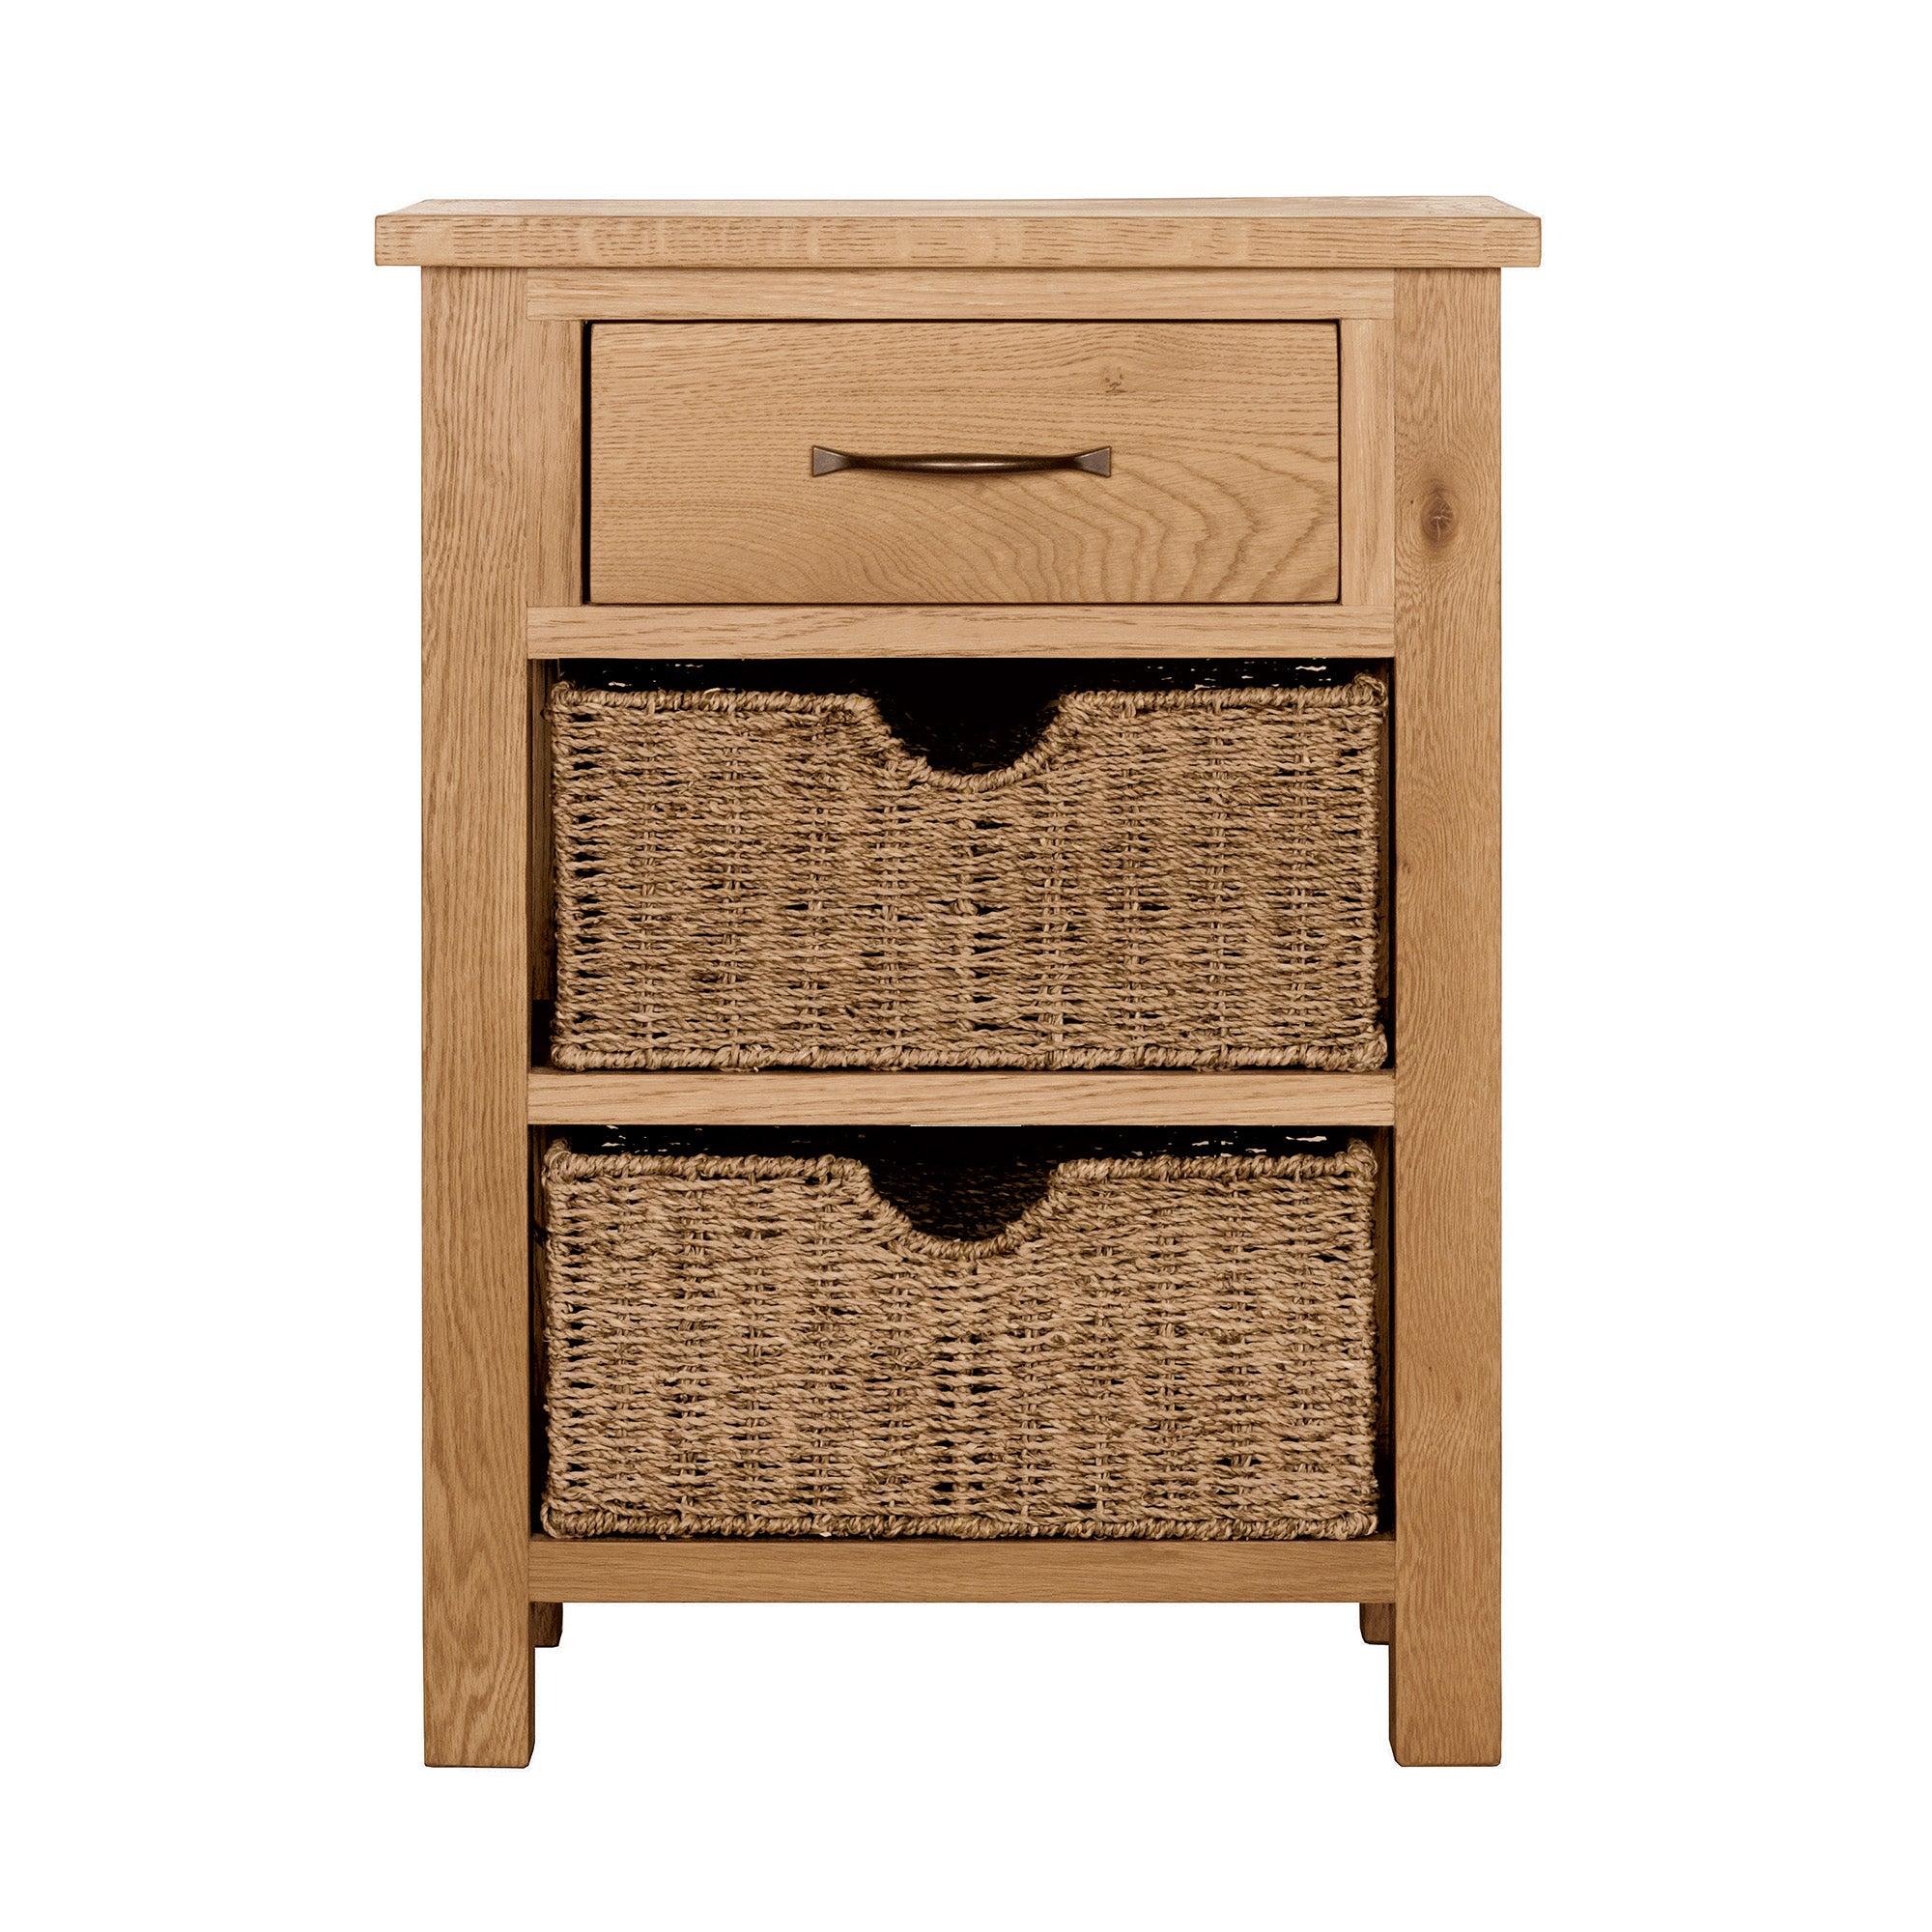 Photo of Sidmouth oak telephone table with baskets light brown / natural